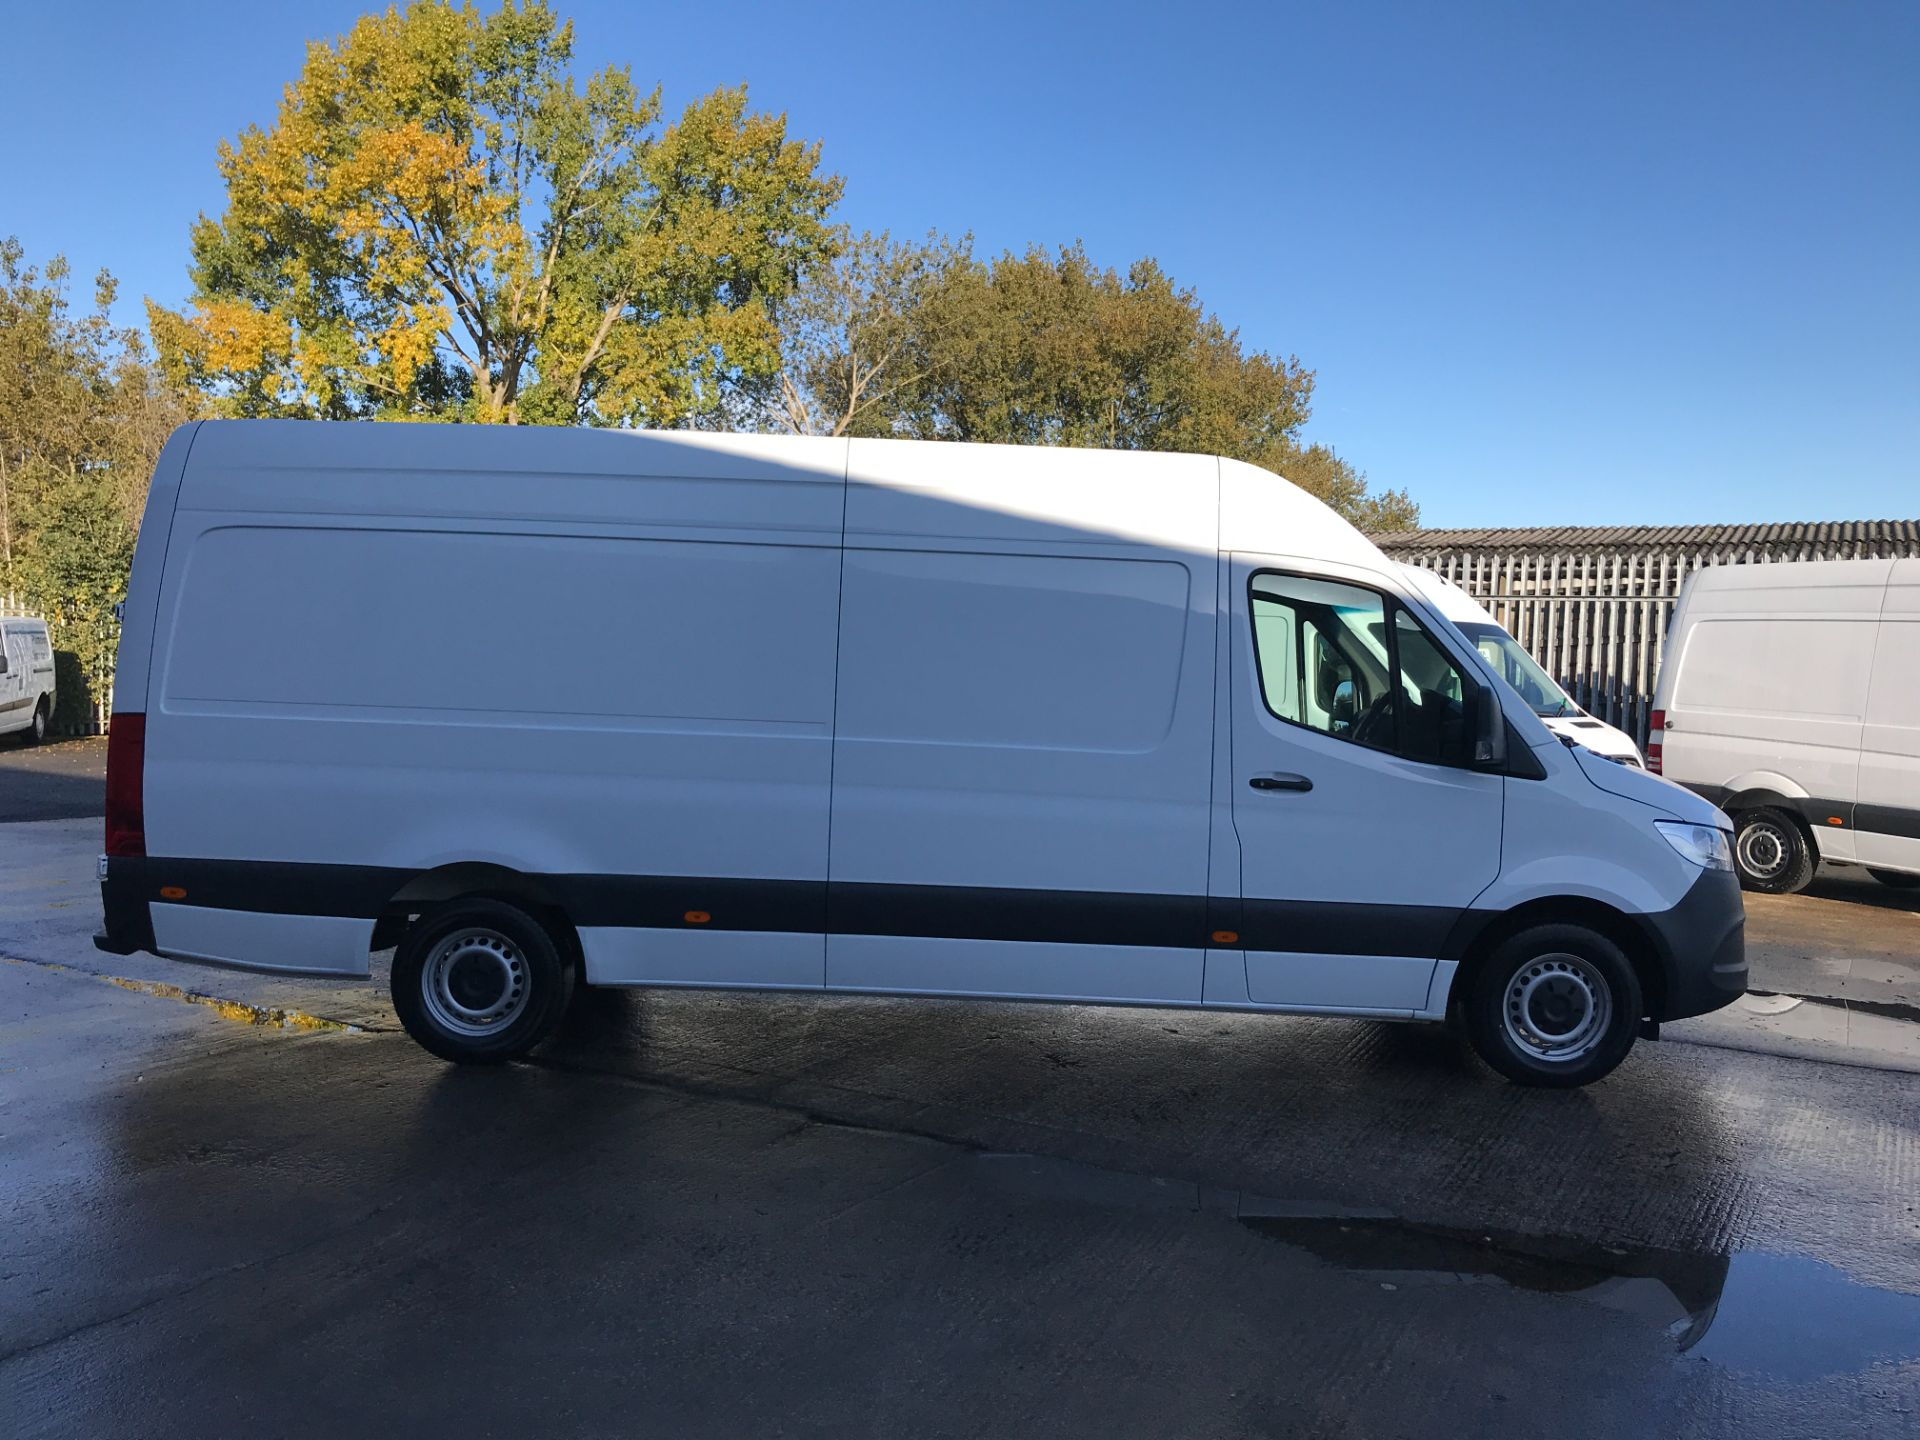 2018 Mercedes-Benz Sprinter 314CDI L3 H2 140PS EURO 6 (KJ18HPL) Thumbnail 7